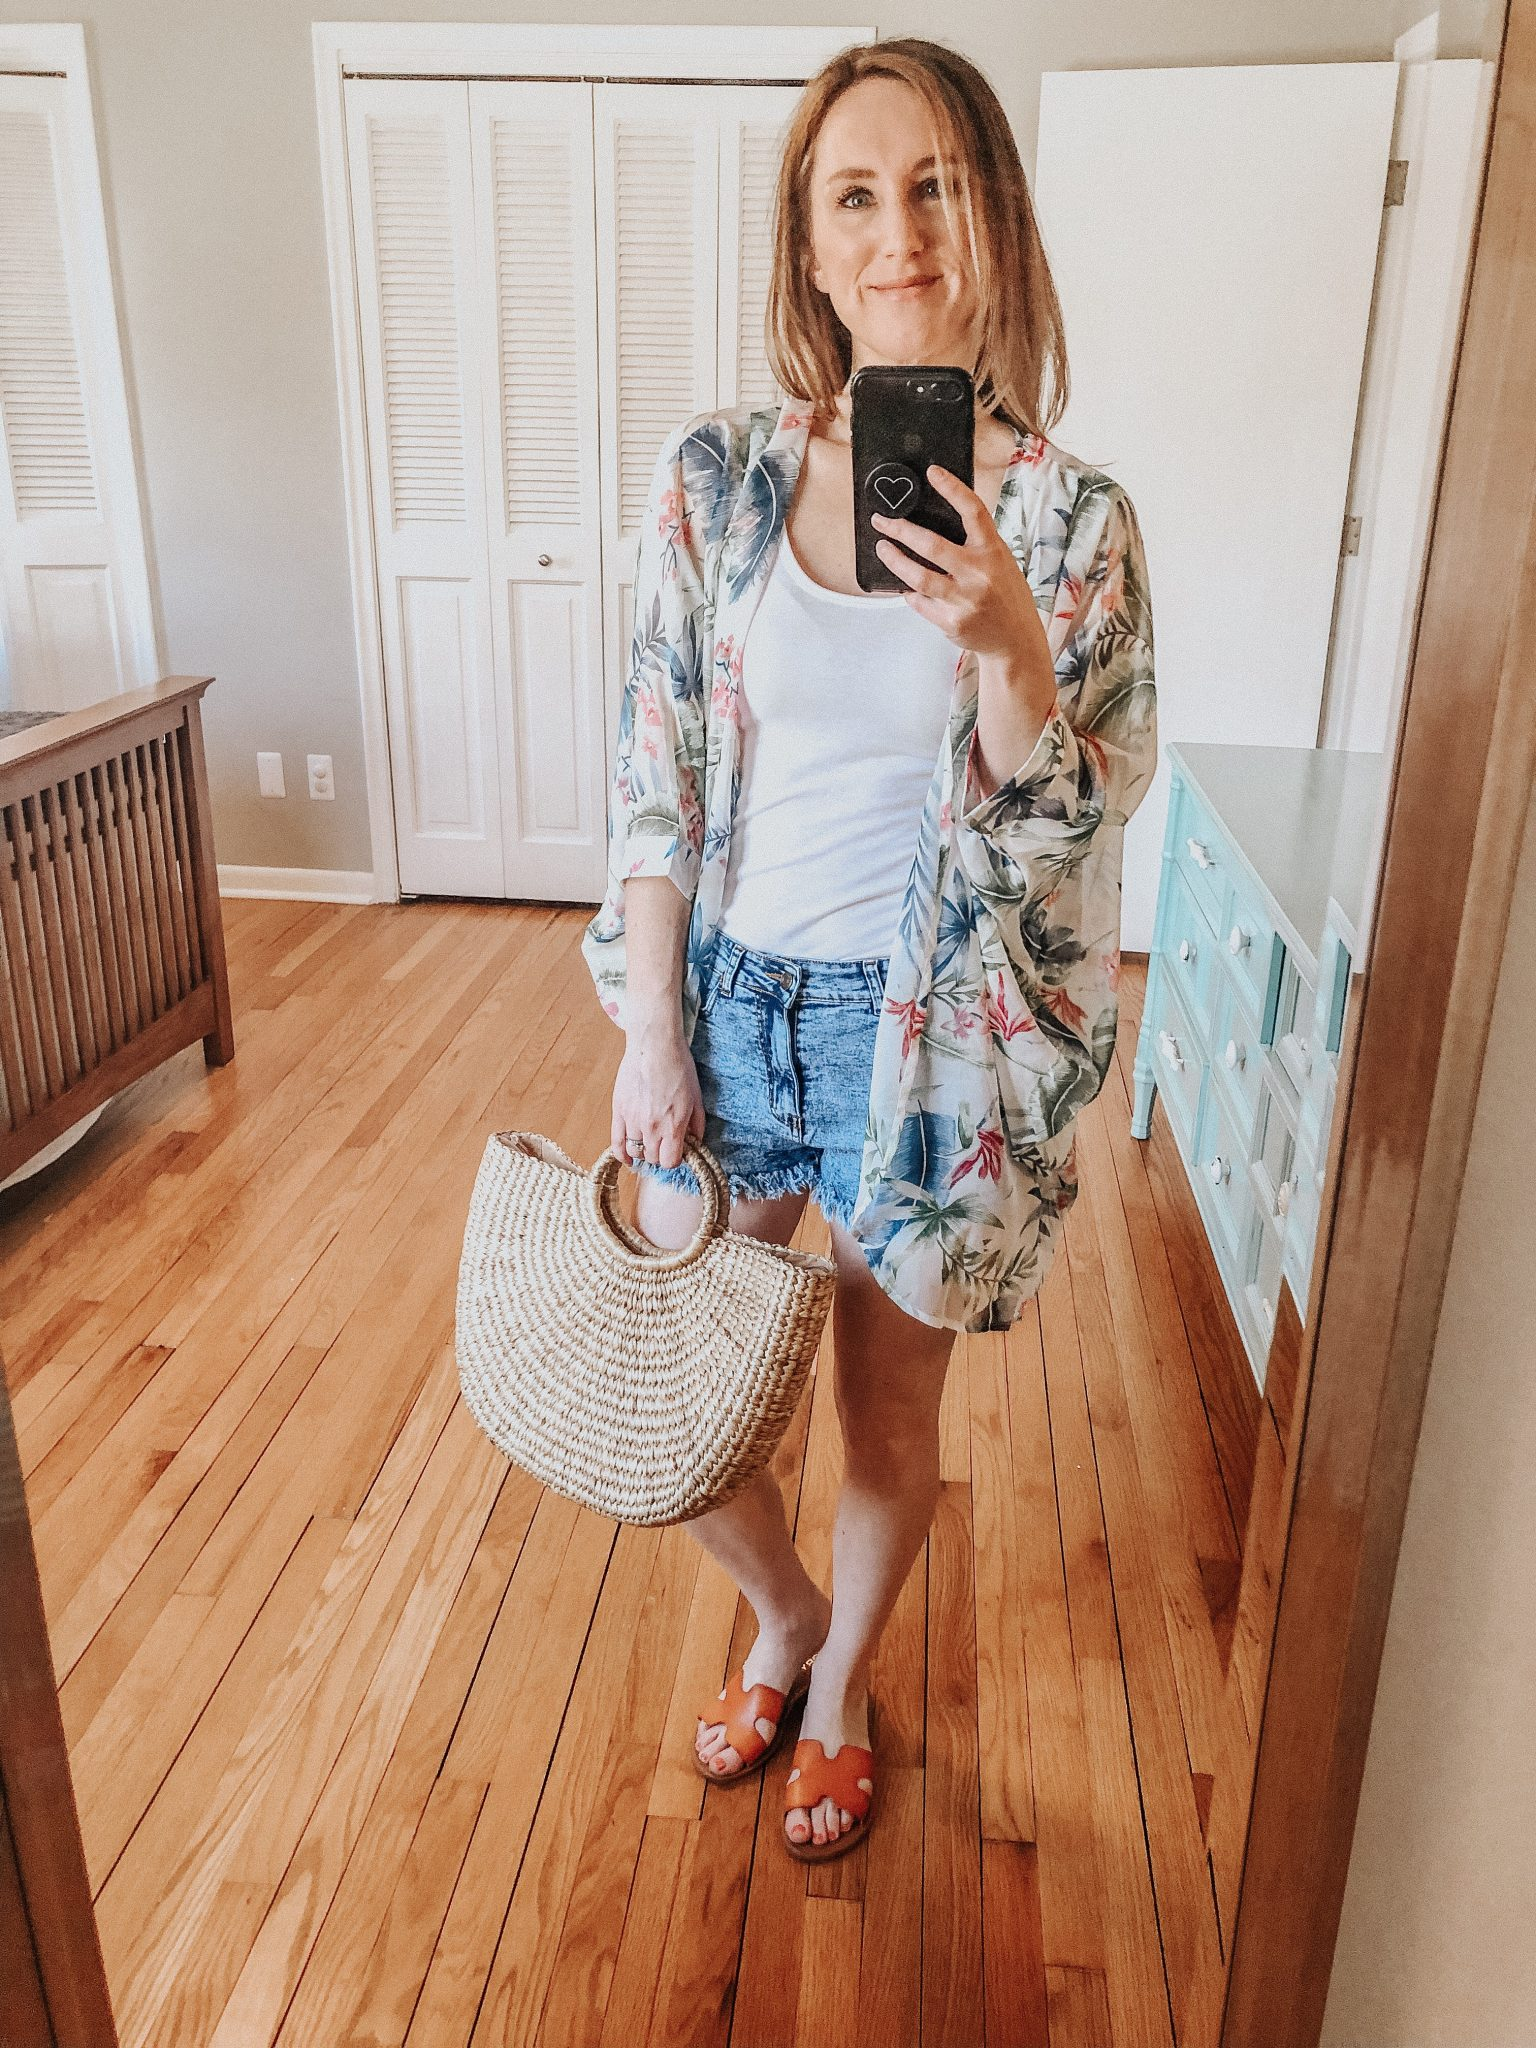 Spring Amazon Haul | Daily Splendor Life and Style Blog || denim shorts, tank, kimono, sandals, amazon prime, #springstyle #springfashion #summeroutfit #primefind #everydaystyle #momstyle #coverup #kimono